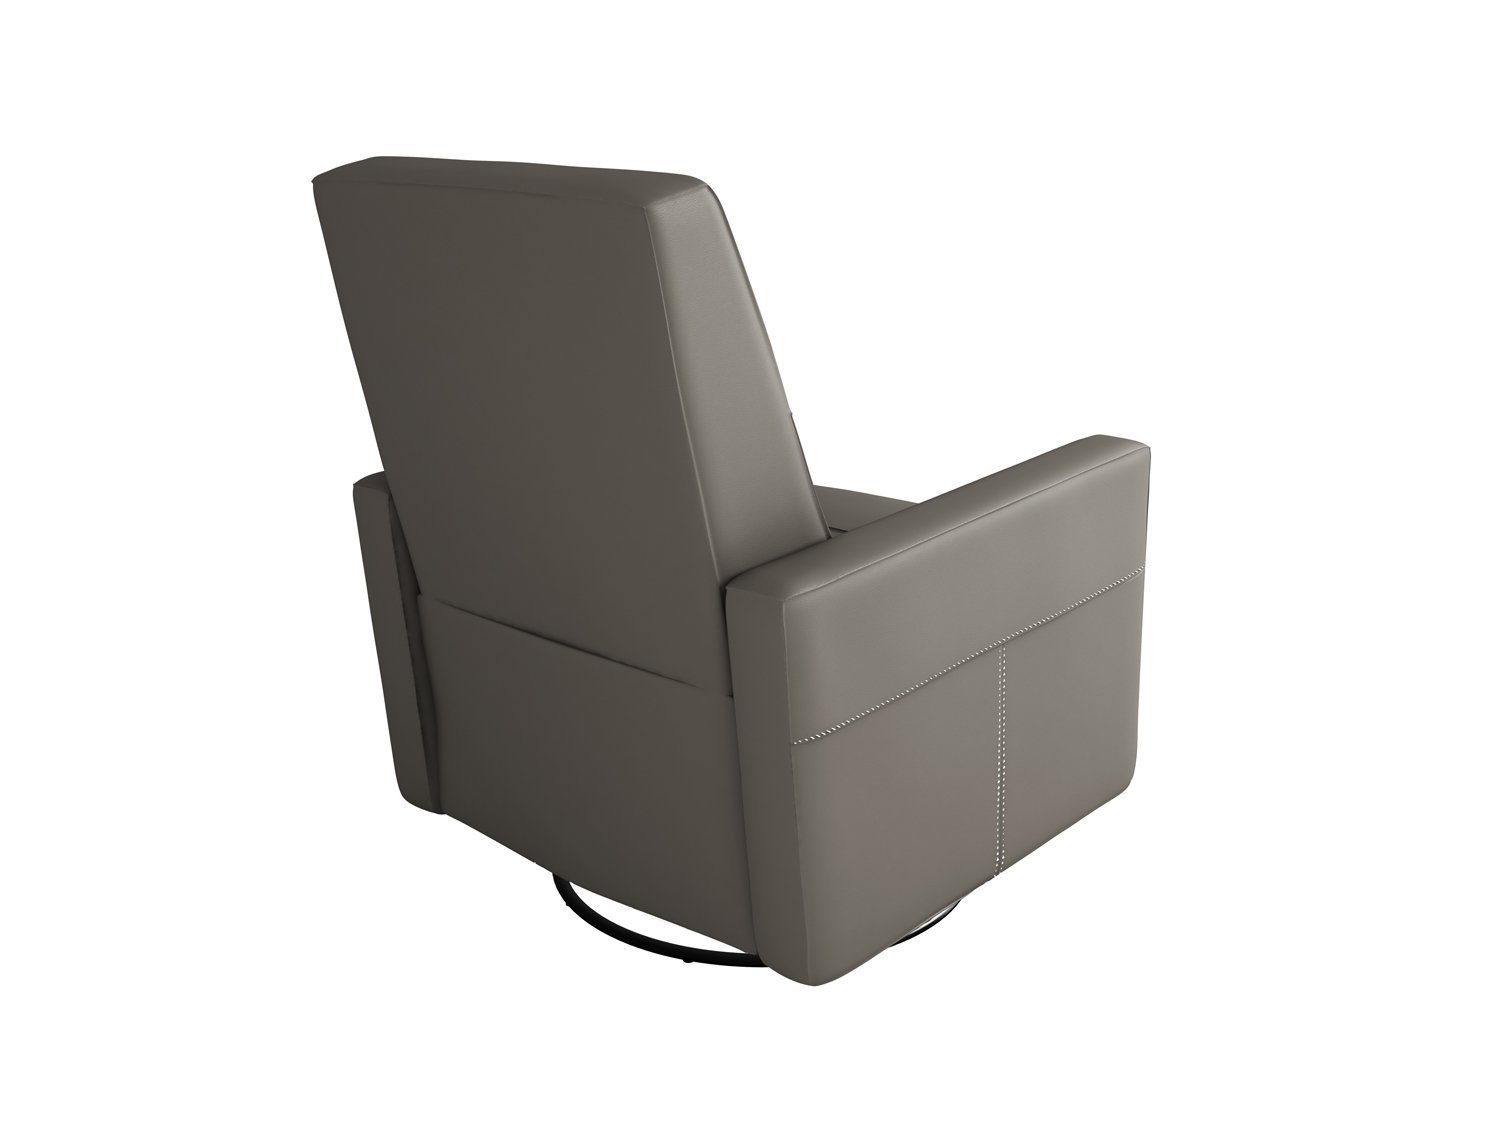 Glider Chair Canada | Dutailier Ultramotion | Dutailier Cushion Replacement